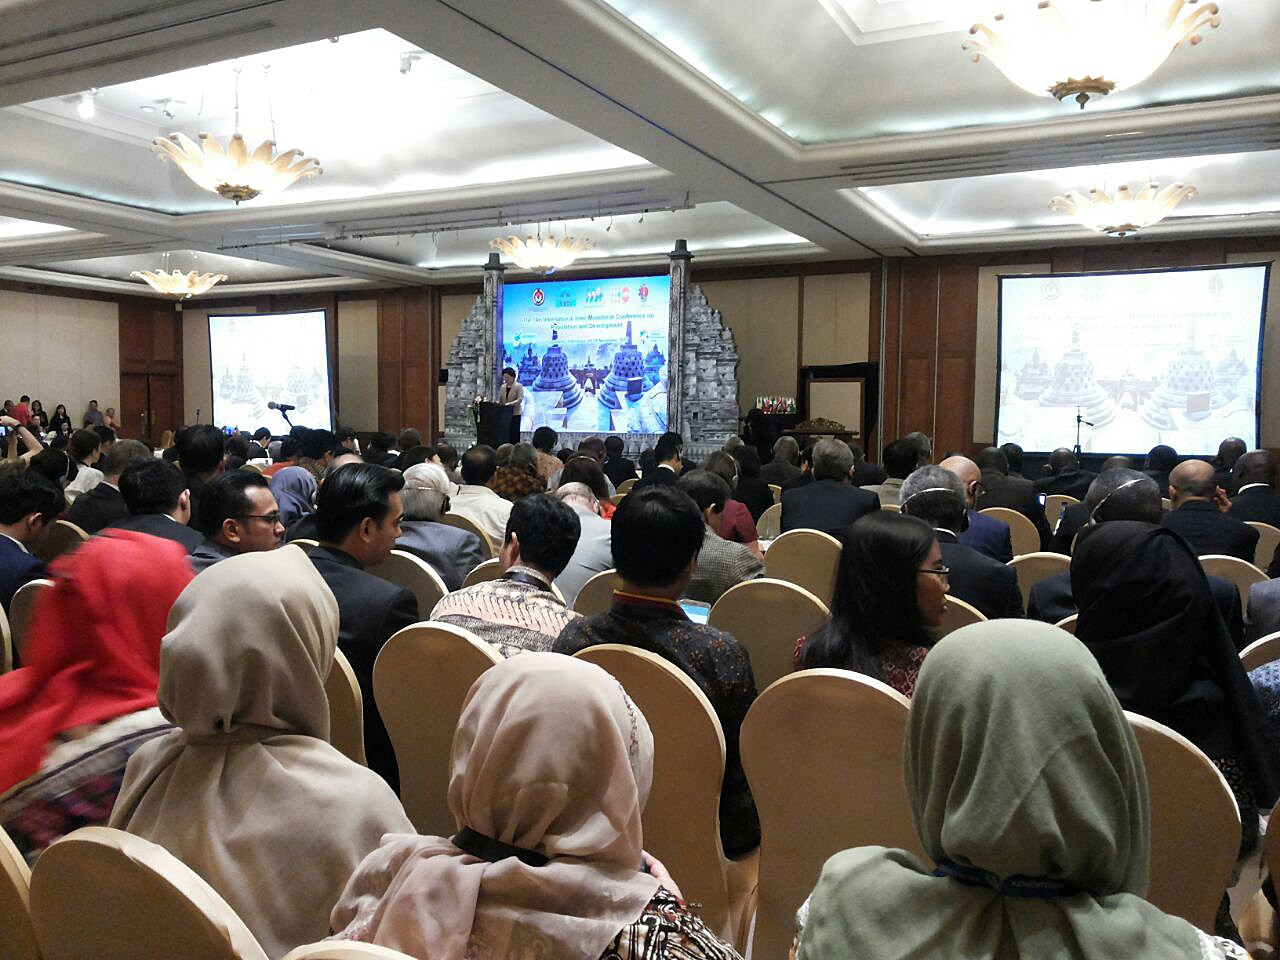 Yogyakarta declaration adopted to strengthen cooperation of population, family planning